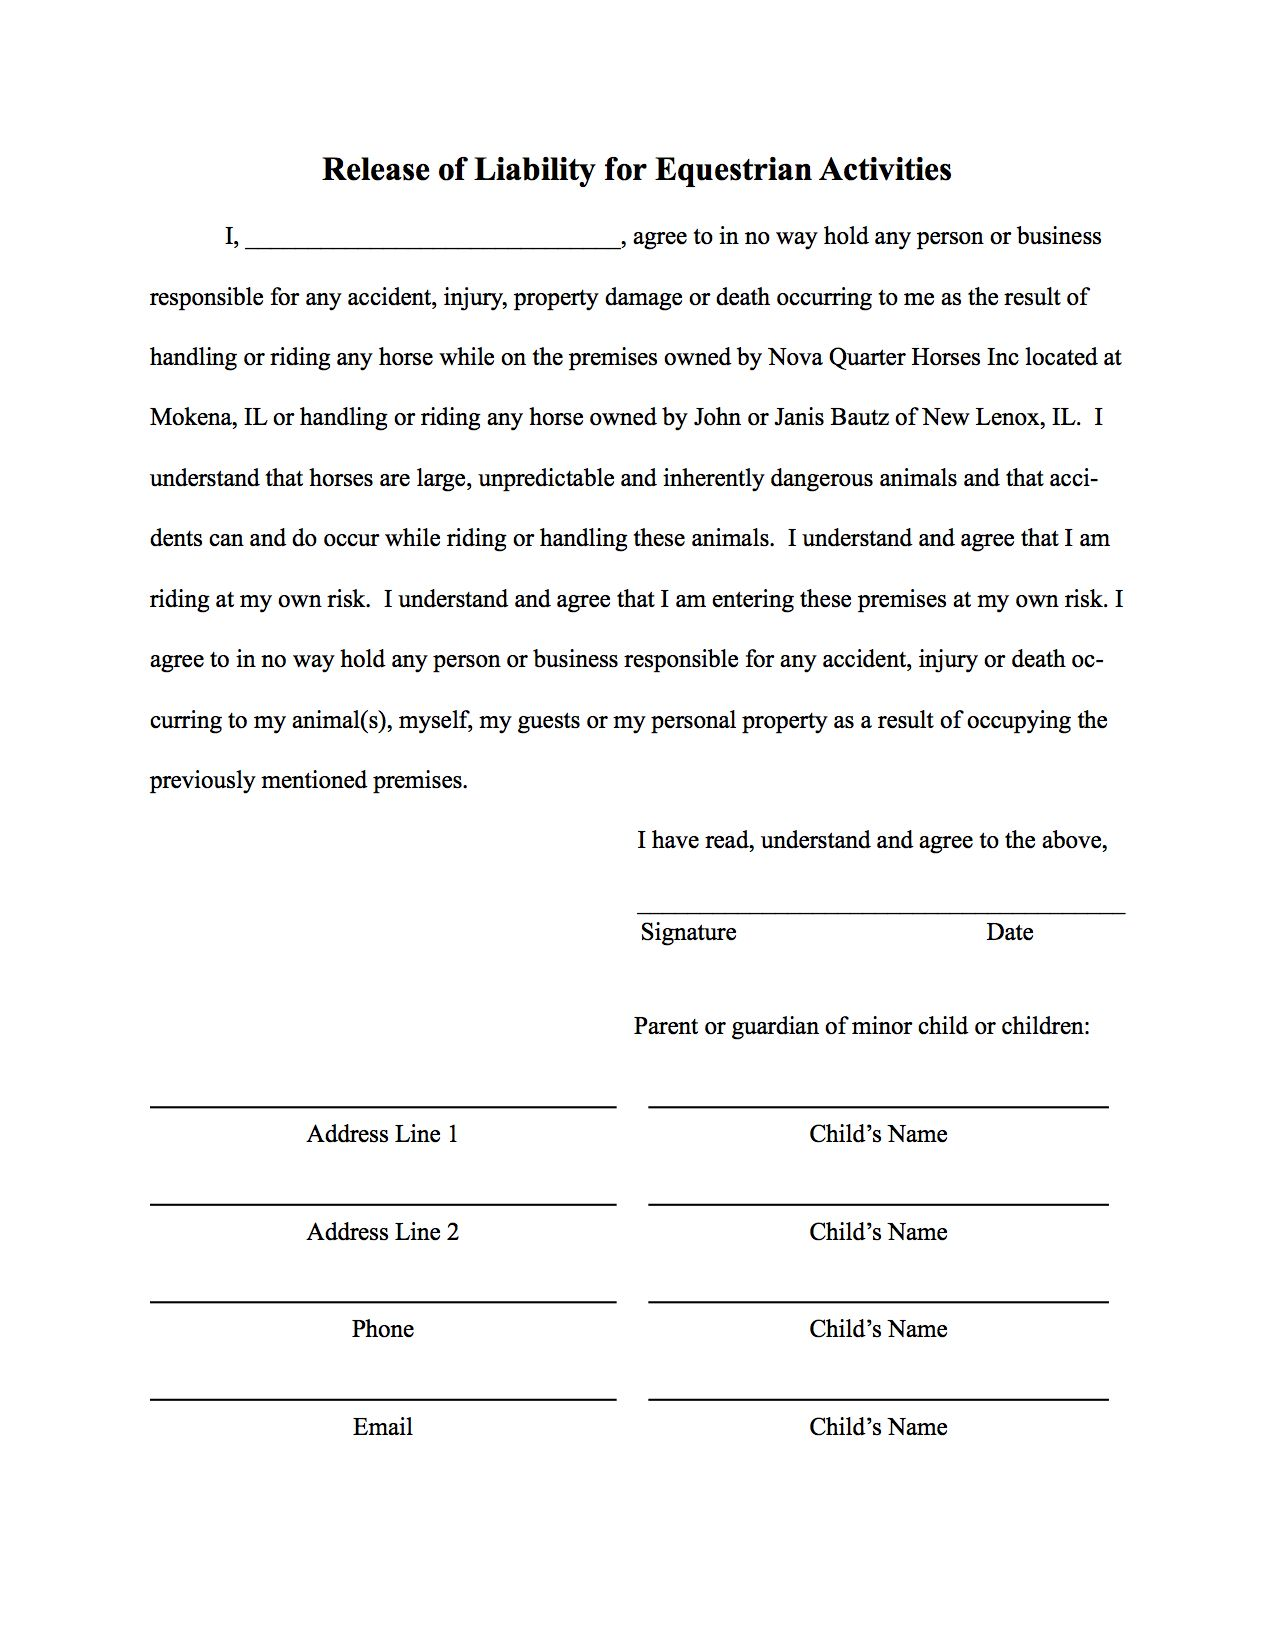 Liability Waiver Form Template Release Of Liability Form Waiver Of Liability  Template With Sample, Liability Waiver Template Free Word Templates  Liability, ...  Liability Waiver Template Word